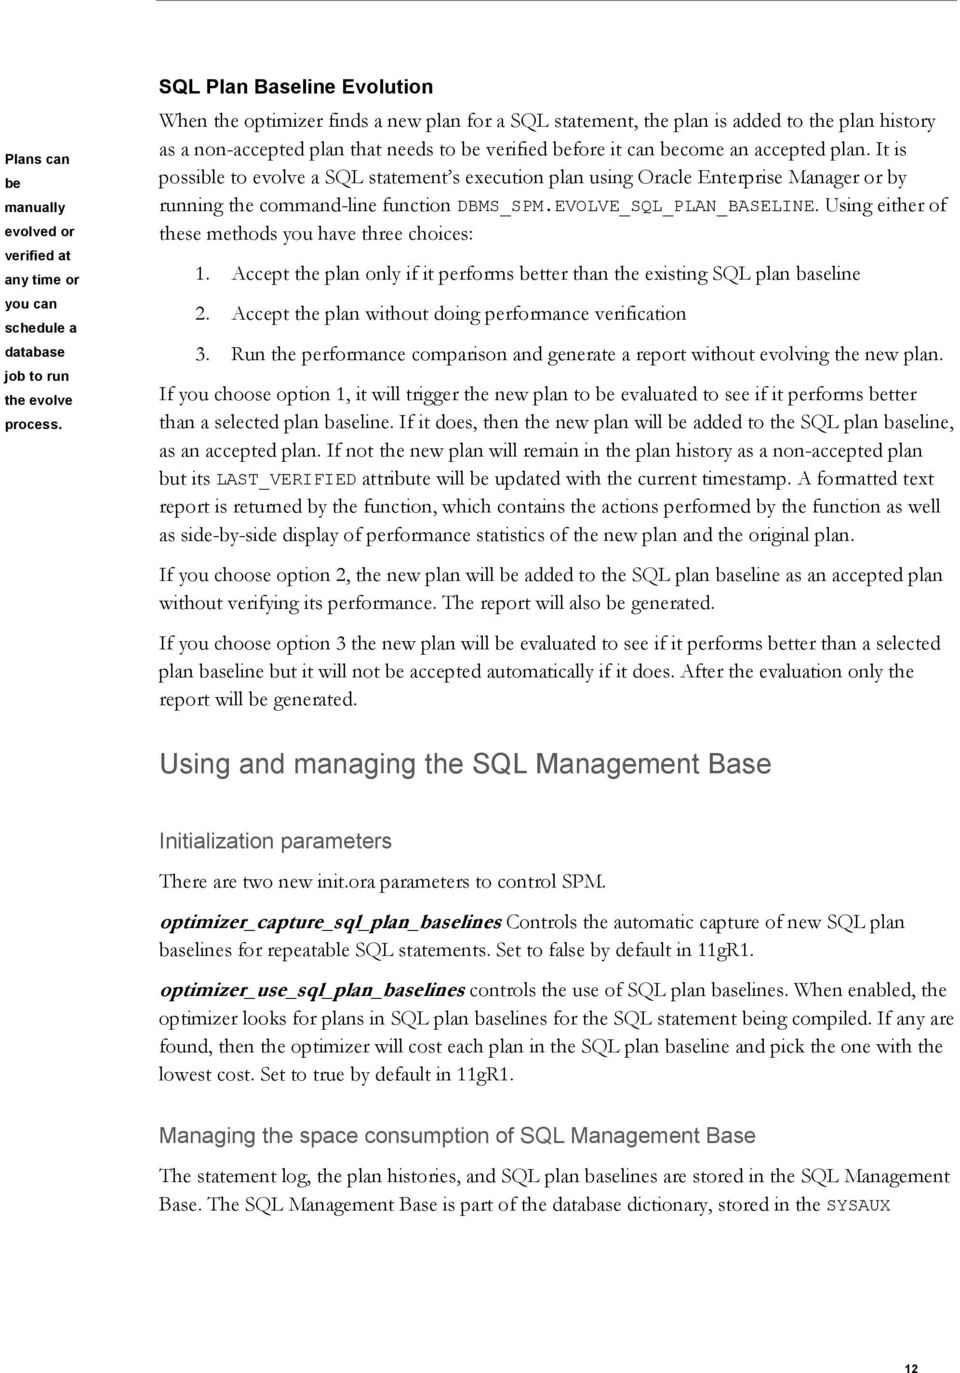 accepted plan. It is possible to evolve a SQL statement s execution plan using Oracle Enterprise Manager or by running the command-line function DBMS_SPM.EVOLVE_SQL_PLAN_BASELINE.